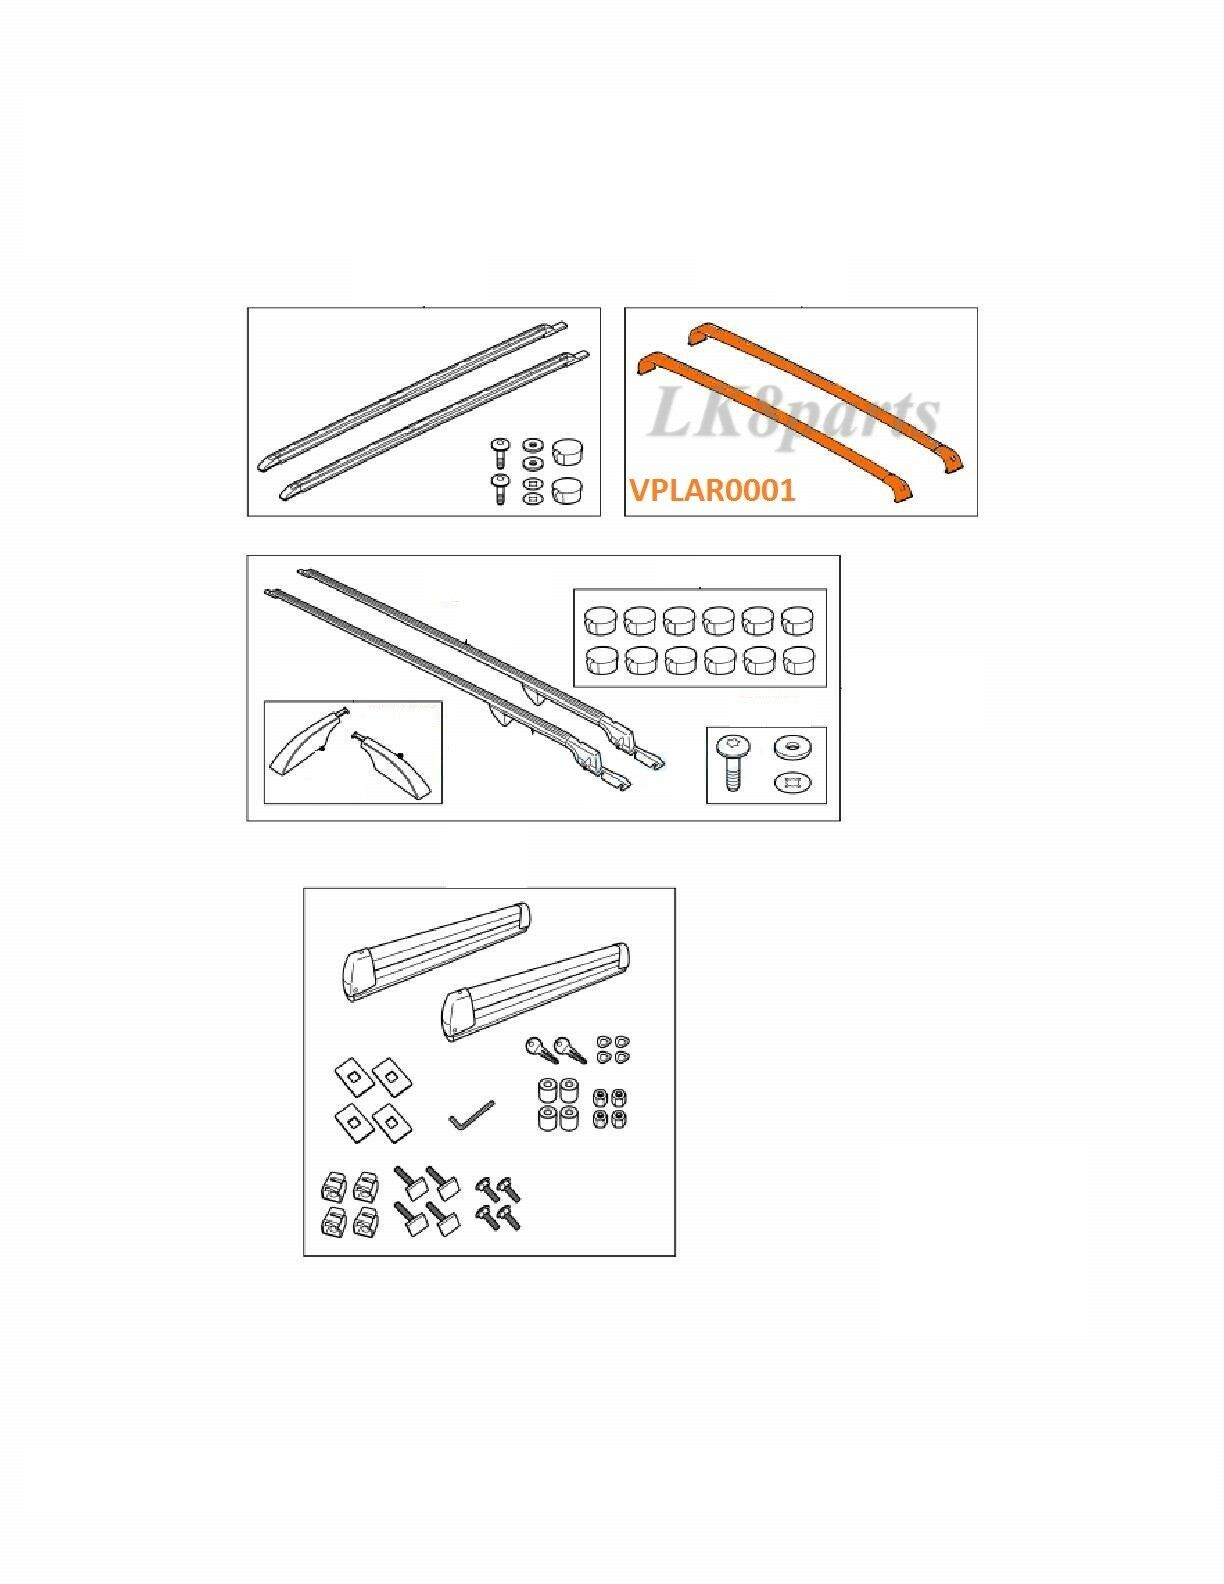 LAND ROVER LR4 LR3 ALUMINIUM ROOF CROSSBARS KIT LR007472